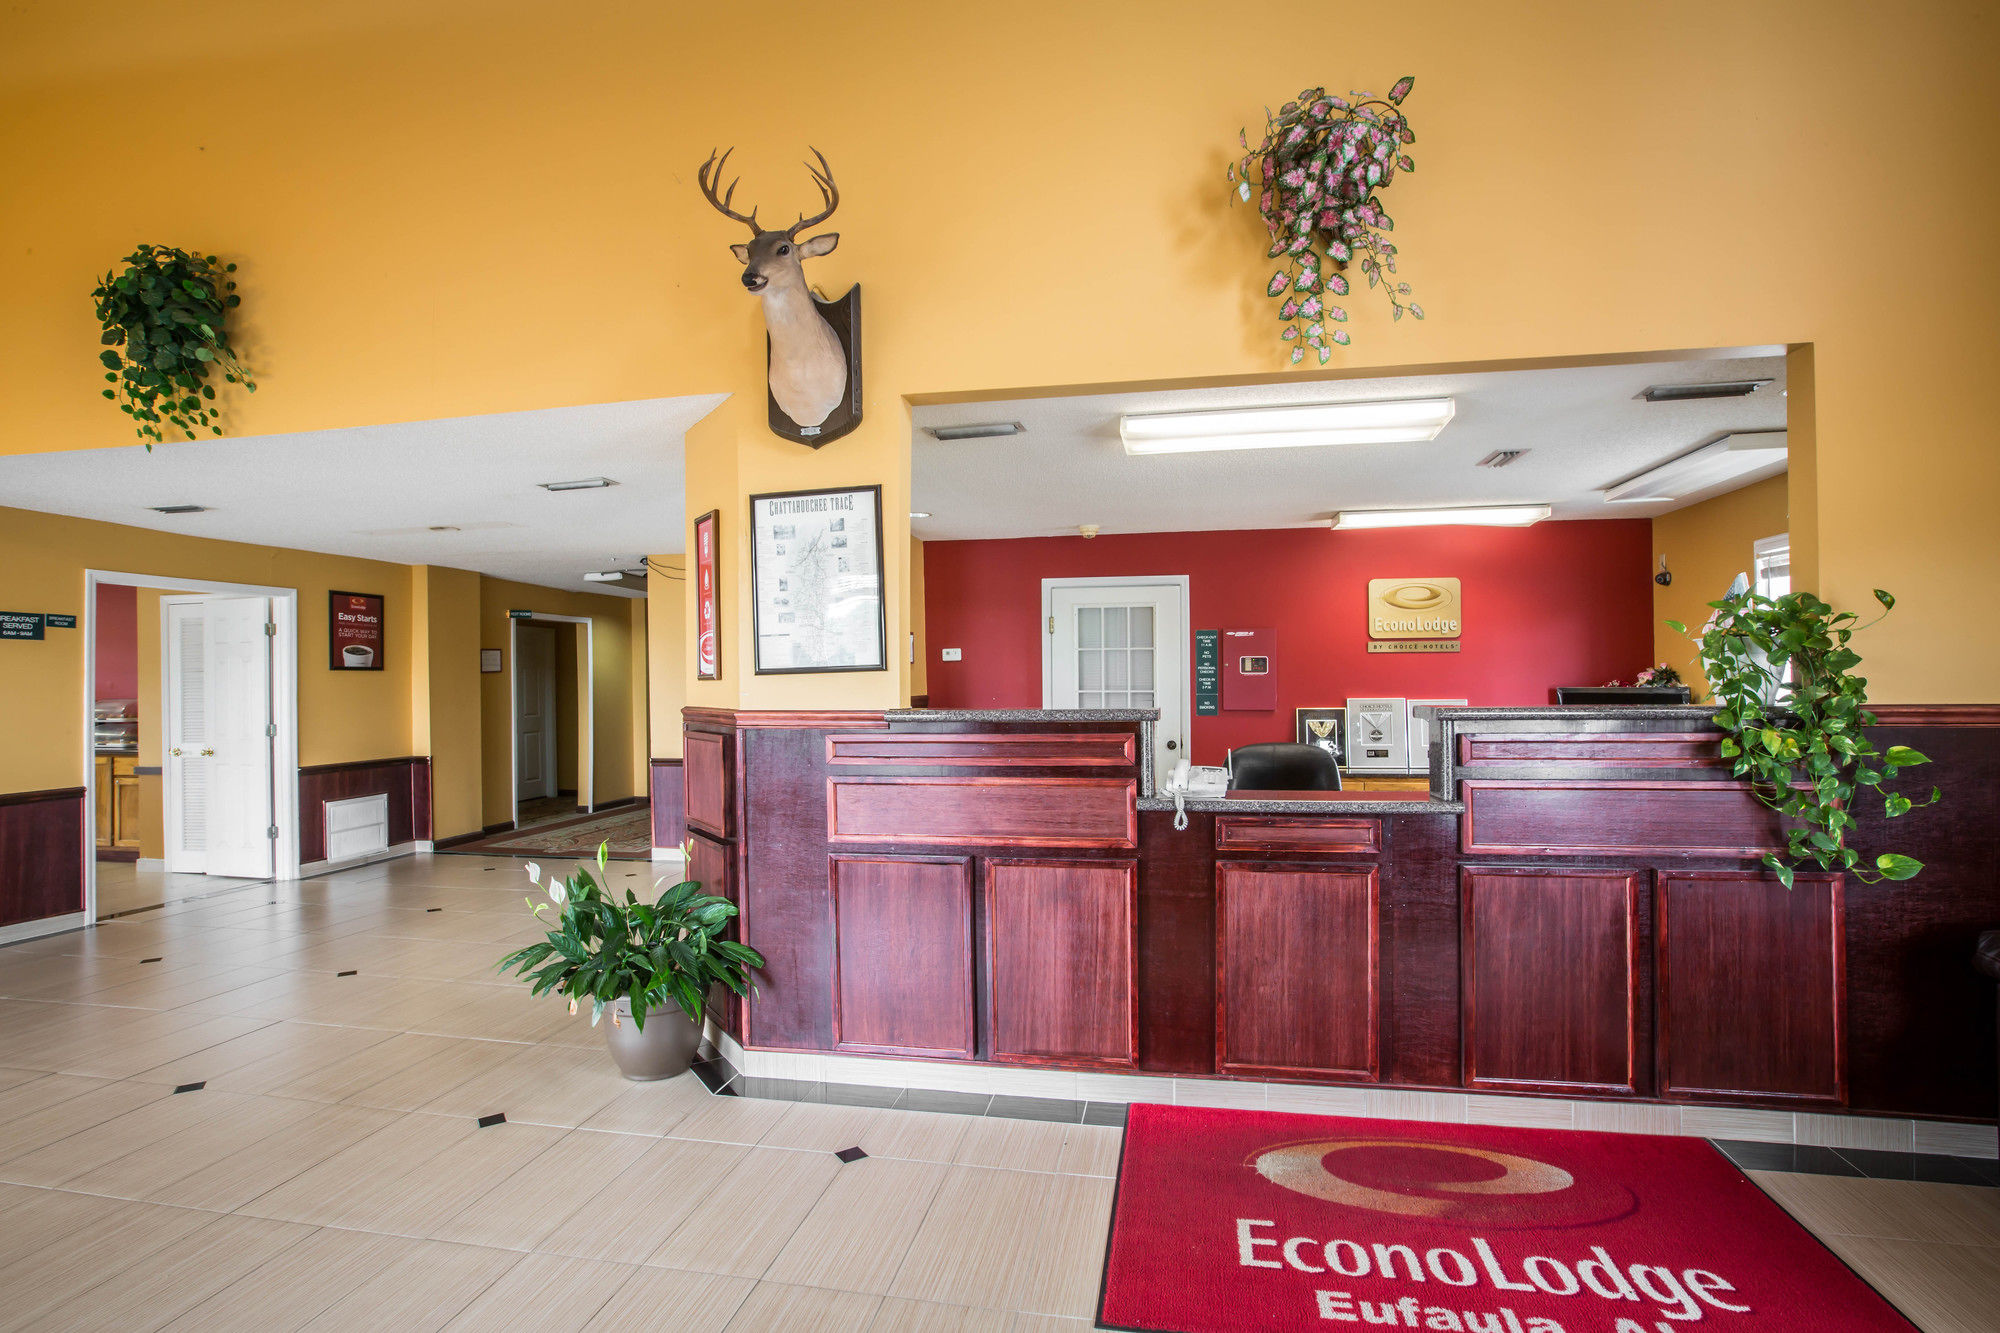 Econo Lodge Eufaula in Eufaula, AL